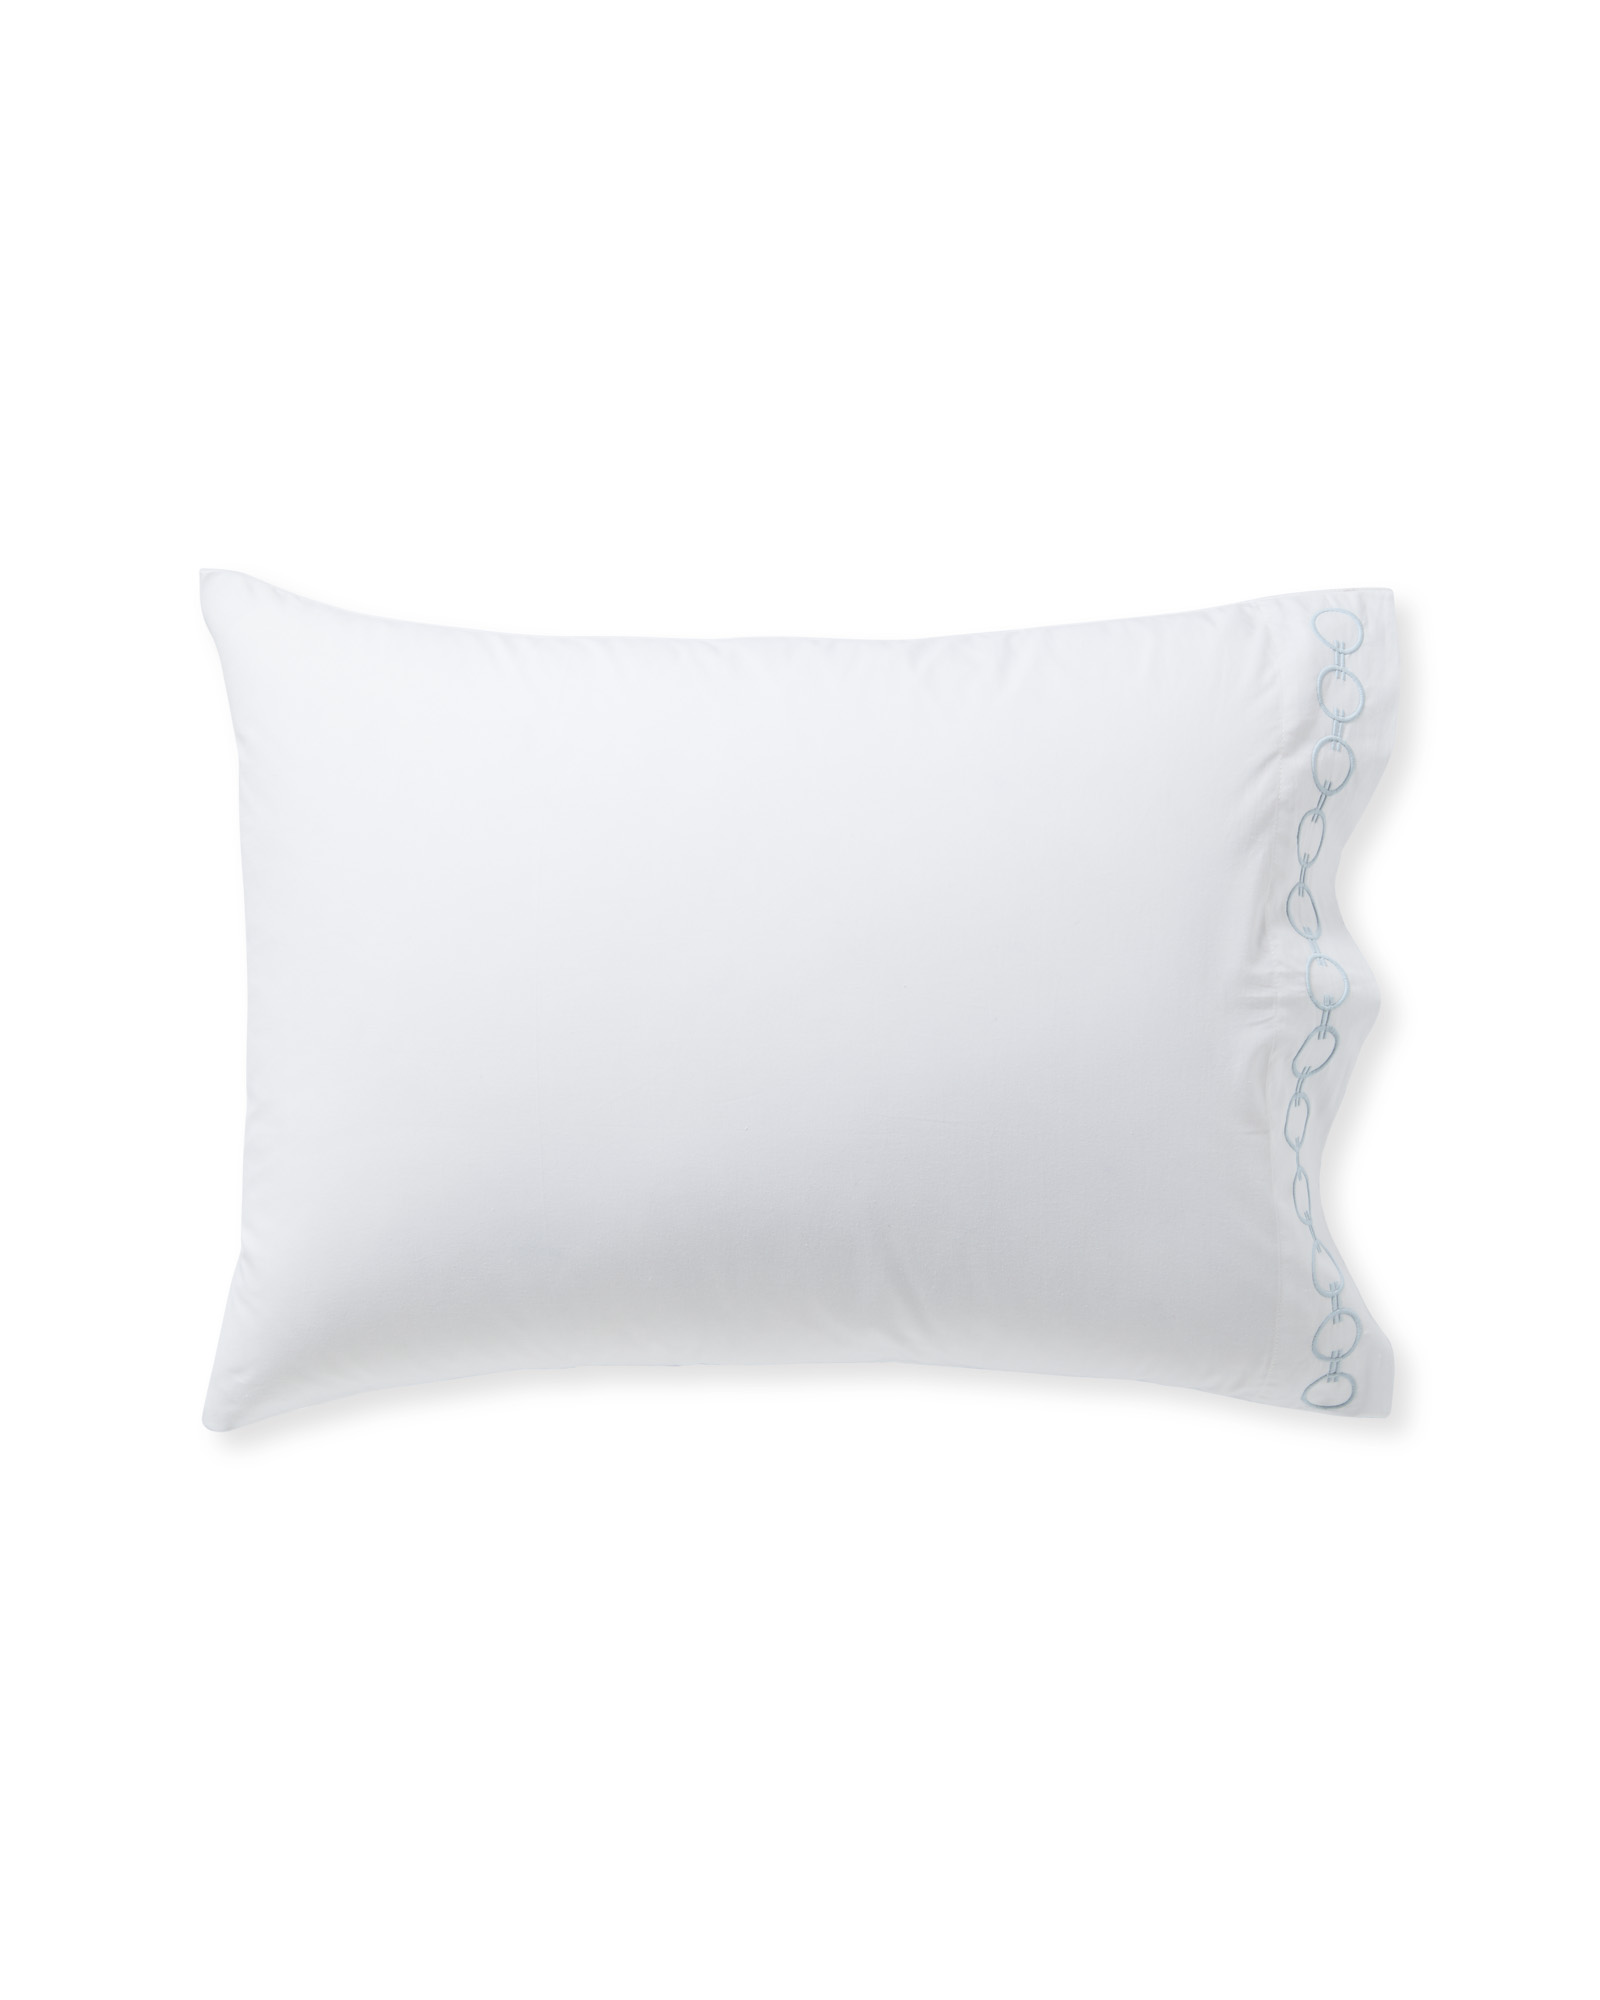 Bel Air Pillowcases (Set of 2), Sky